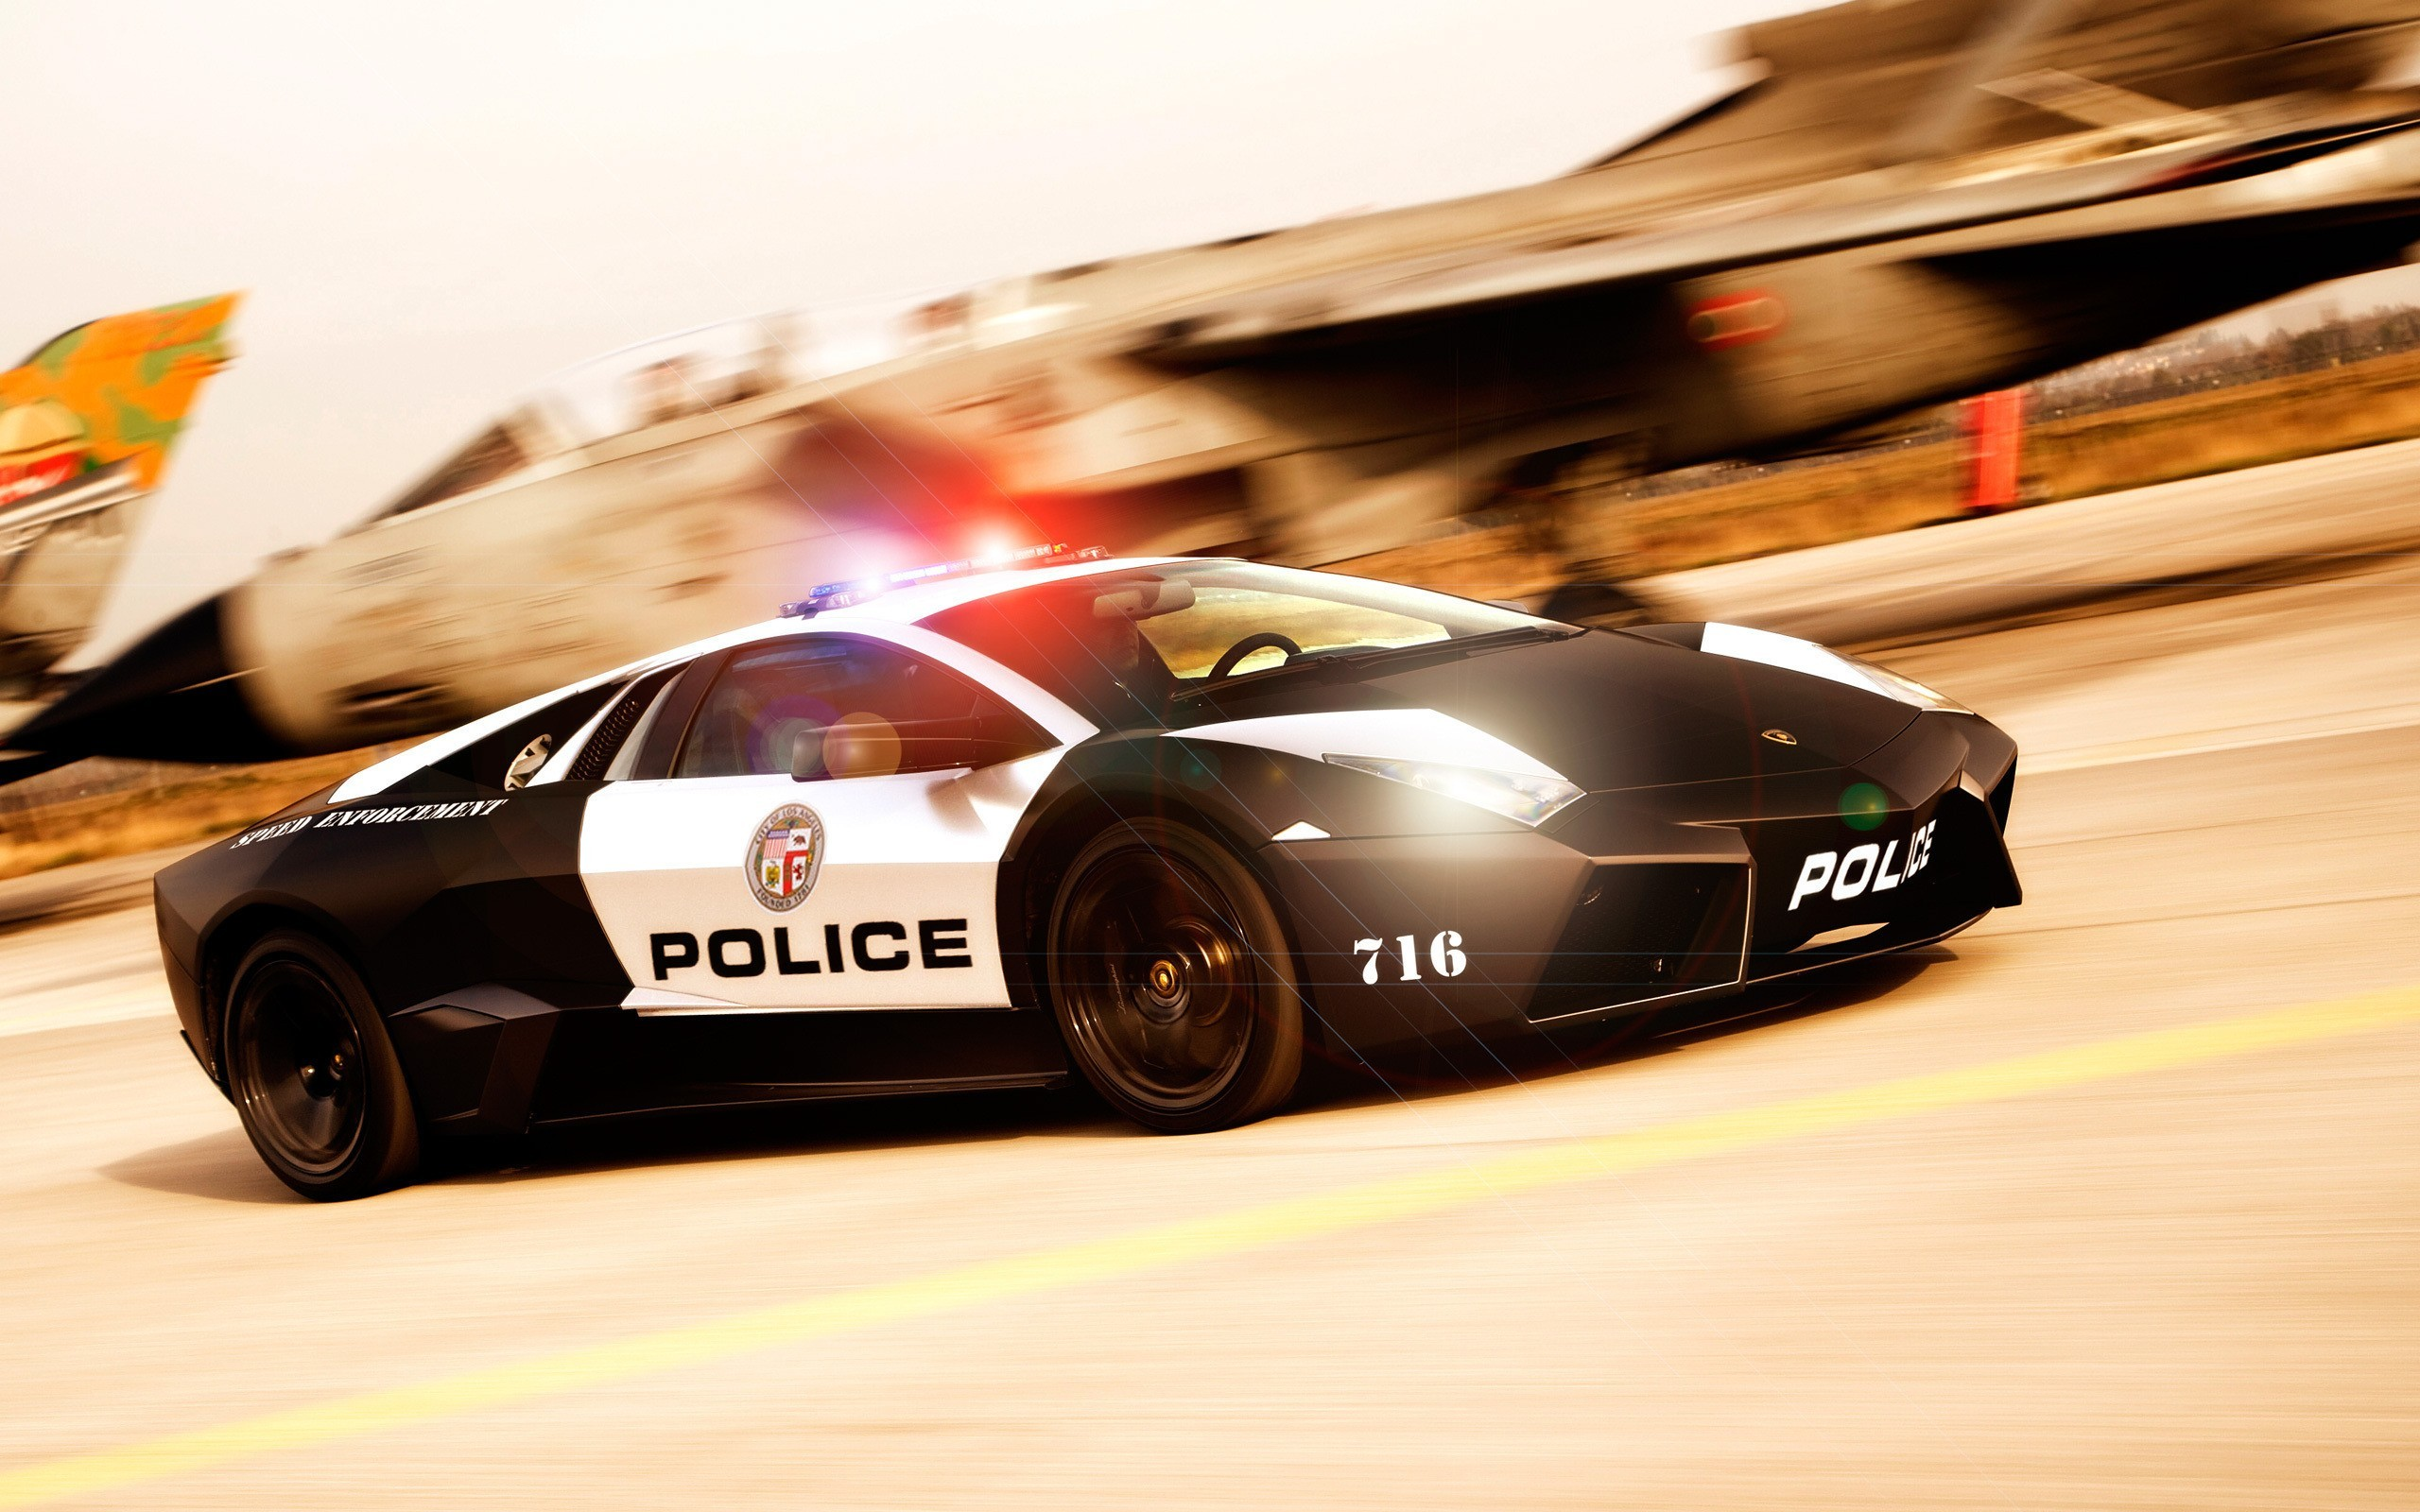 cars police Lamborghini need HD Wallpaper